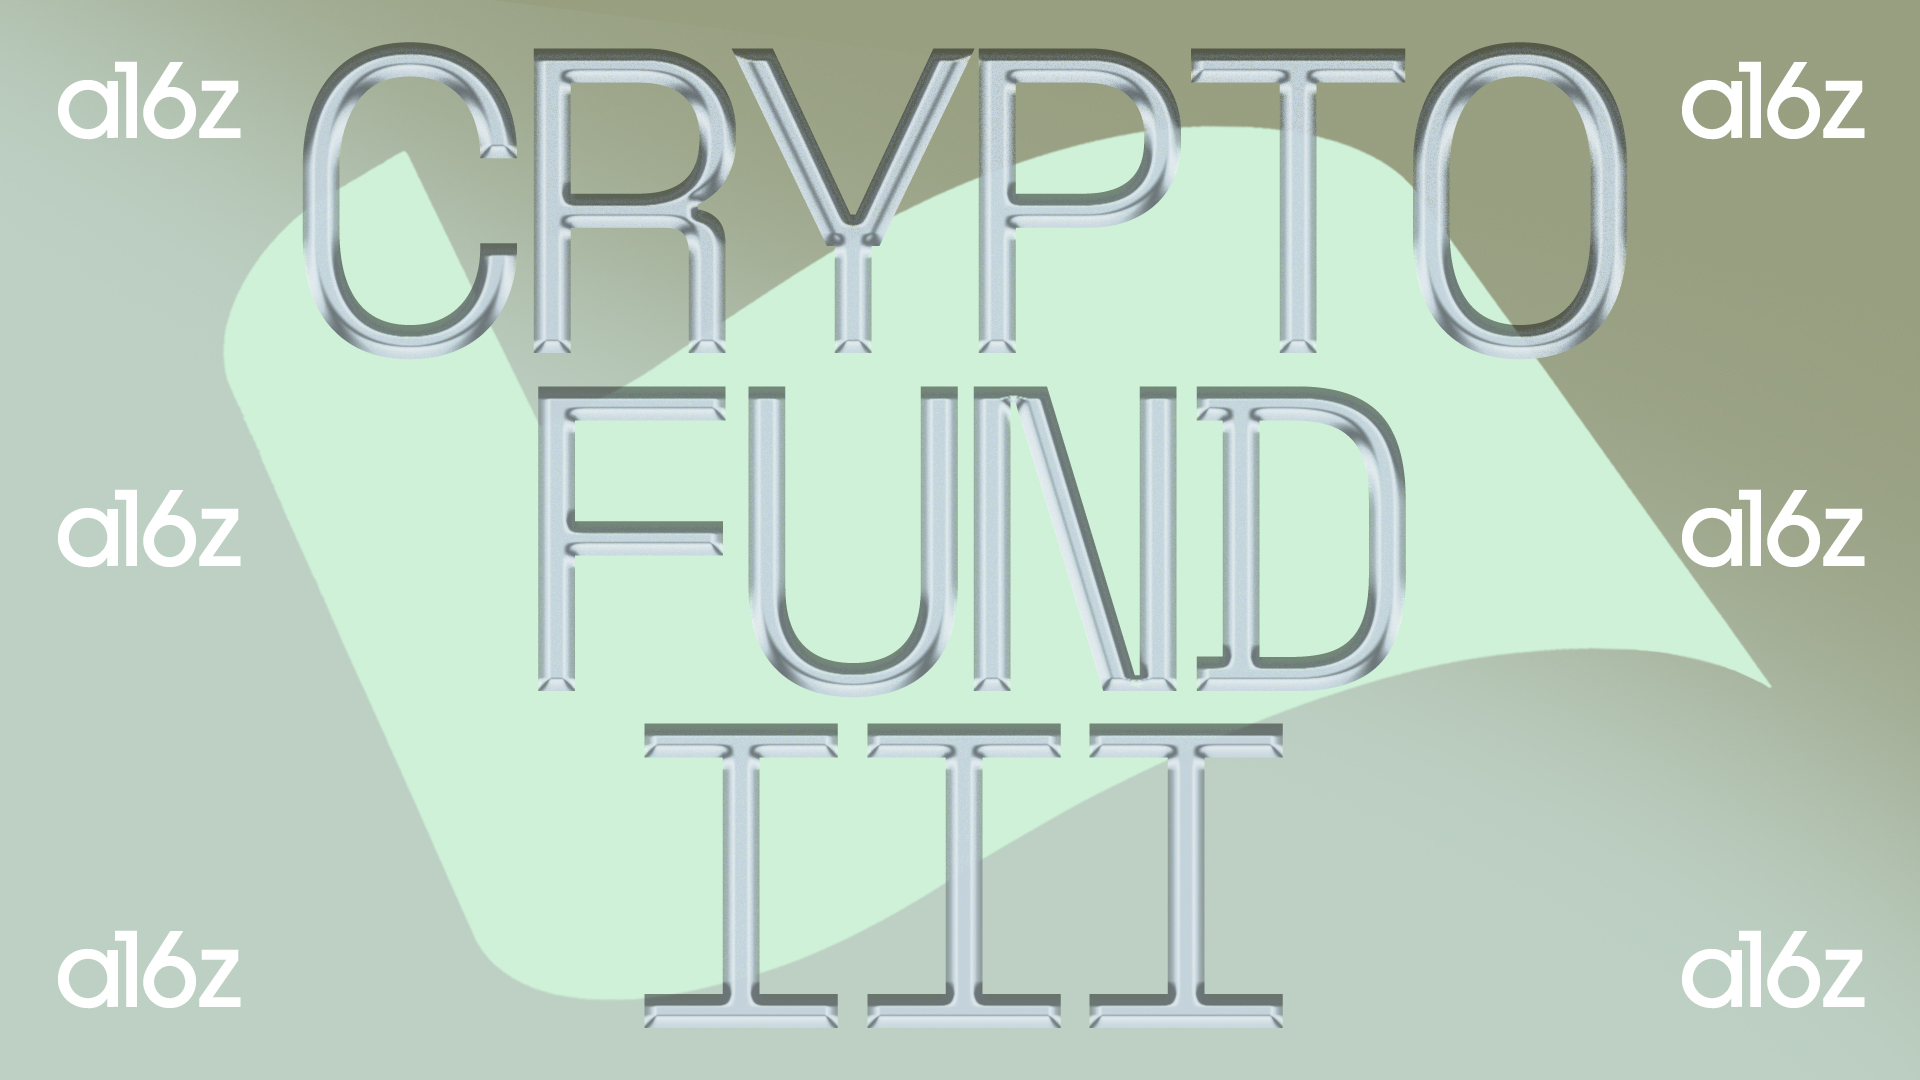 'Largest crypto fund ever:' a16z officially launches new $2.2 billion crypto venture fund